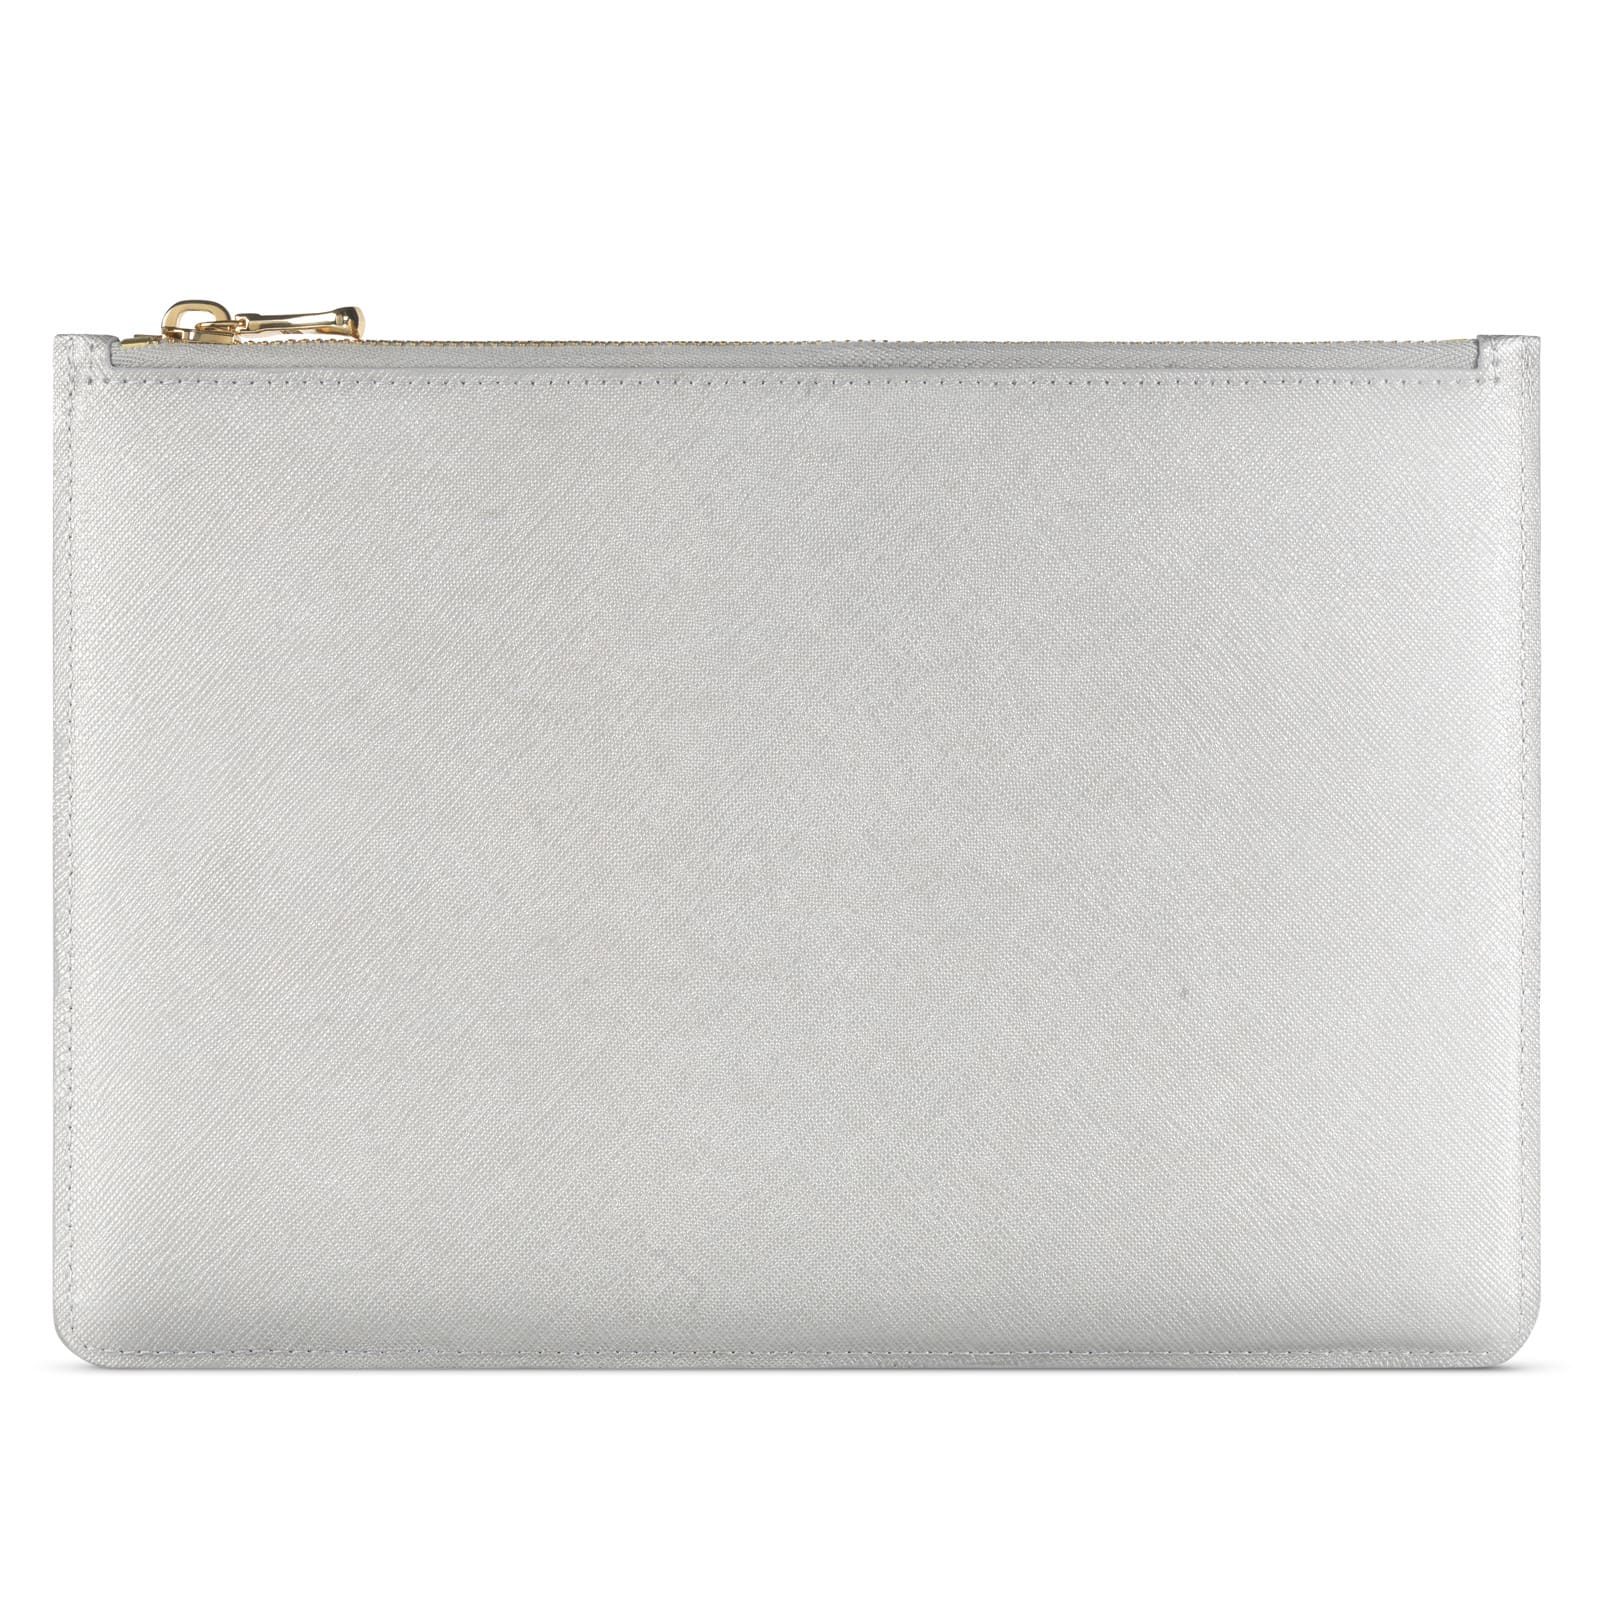 Blank Personalised Silver Saffiano Leather Pouch